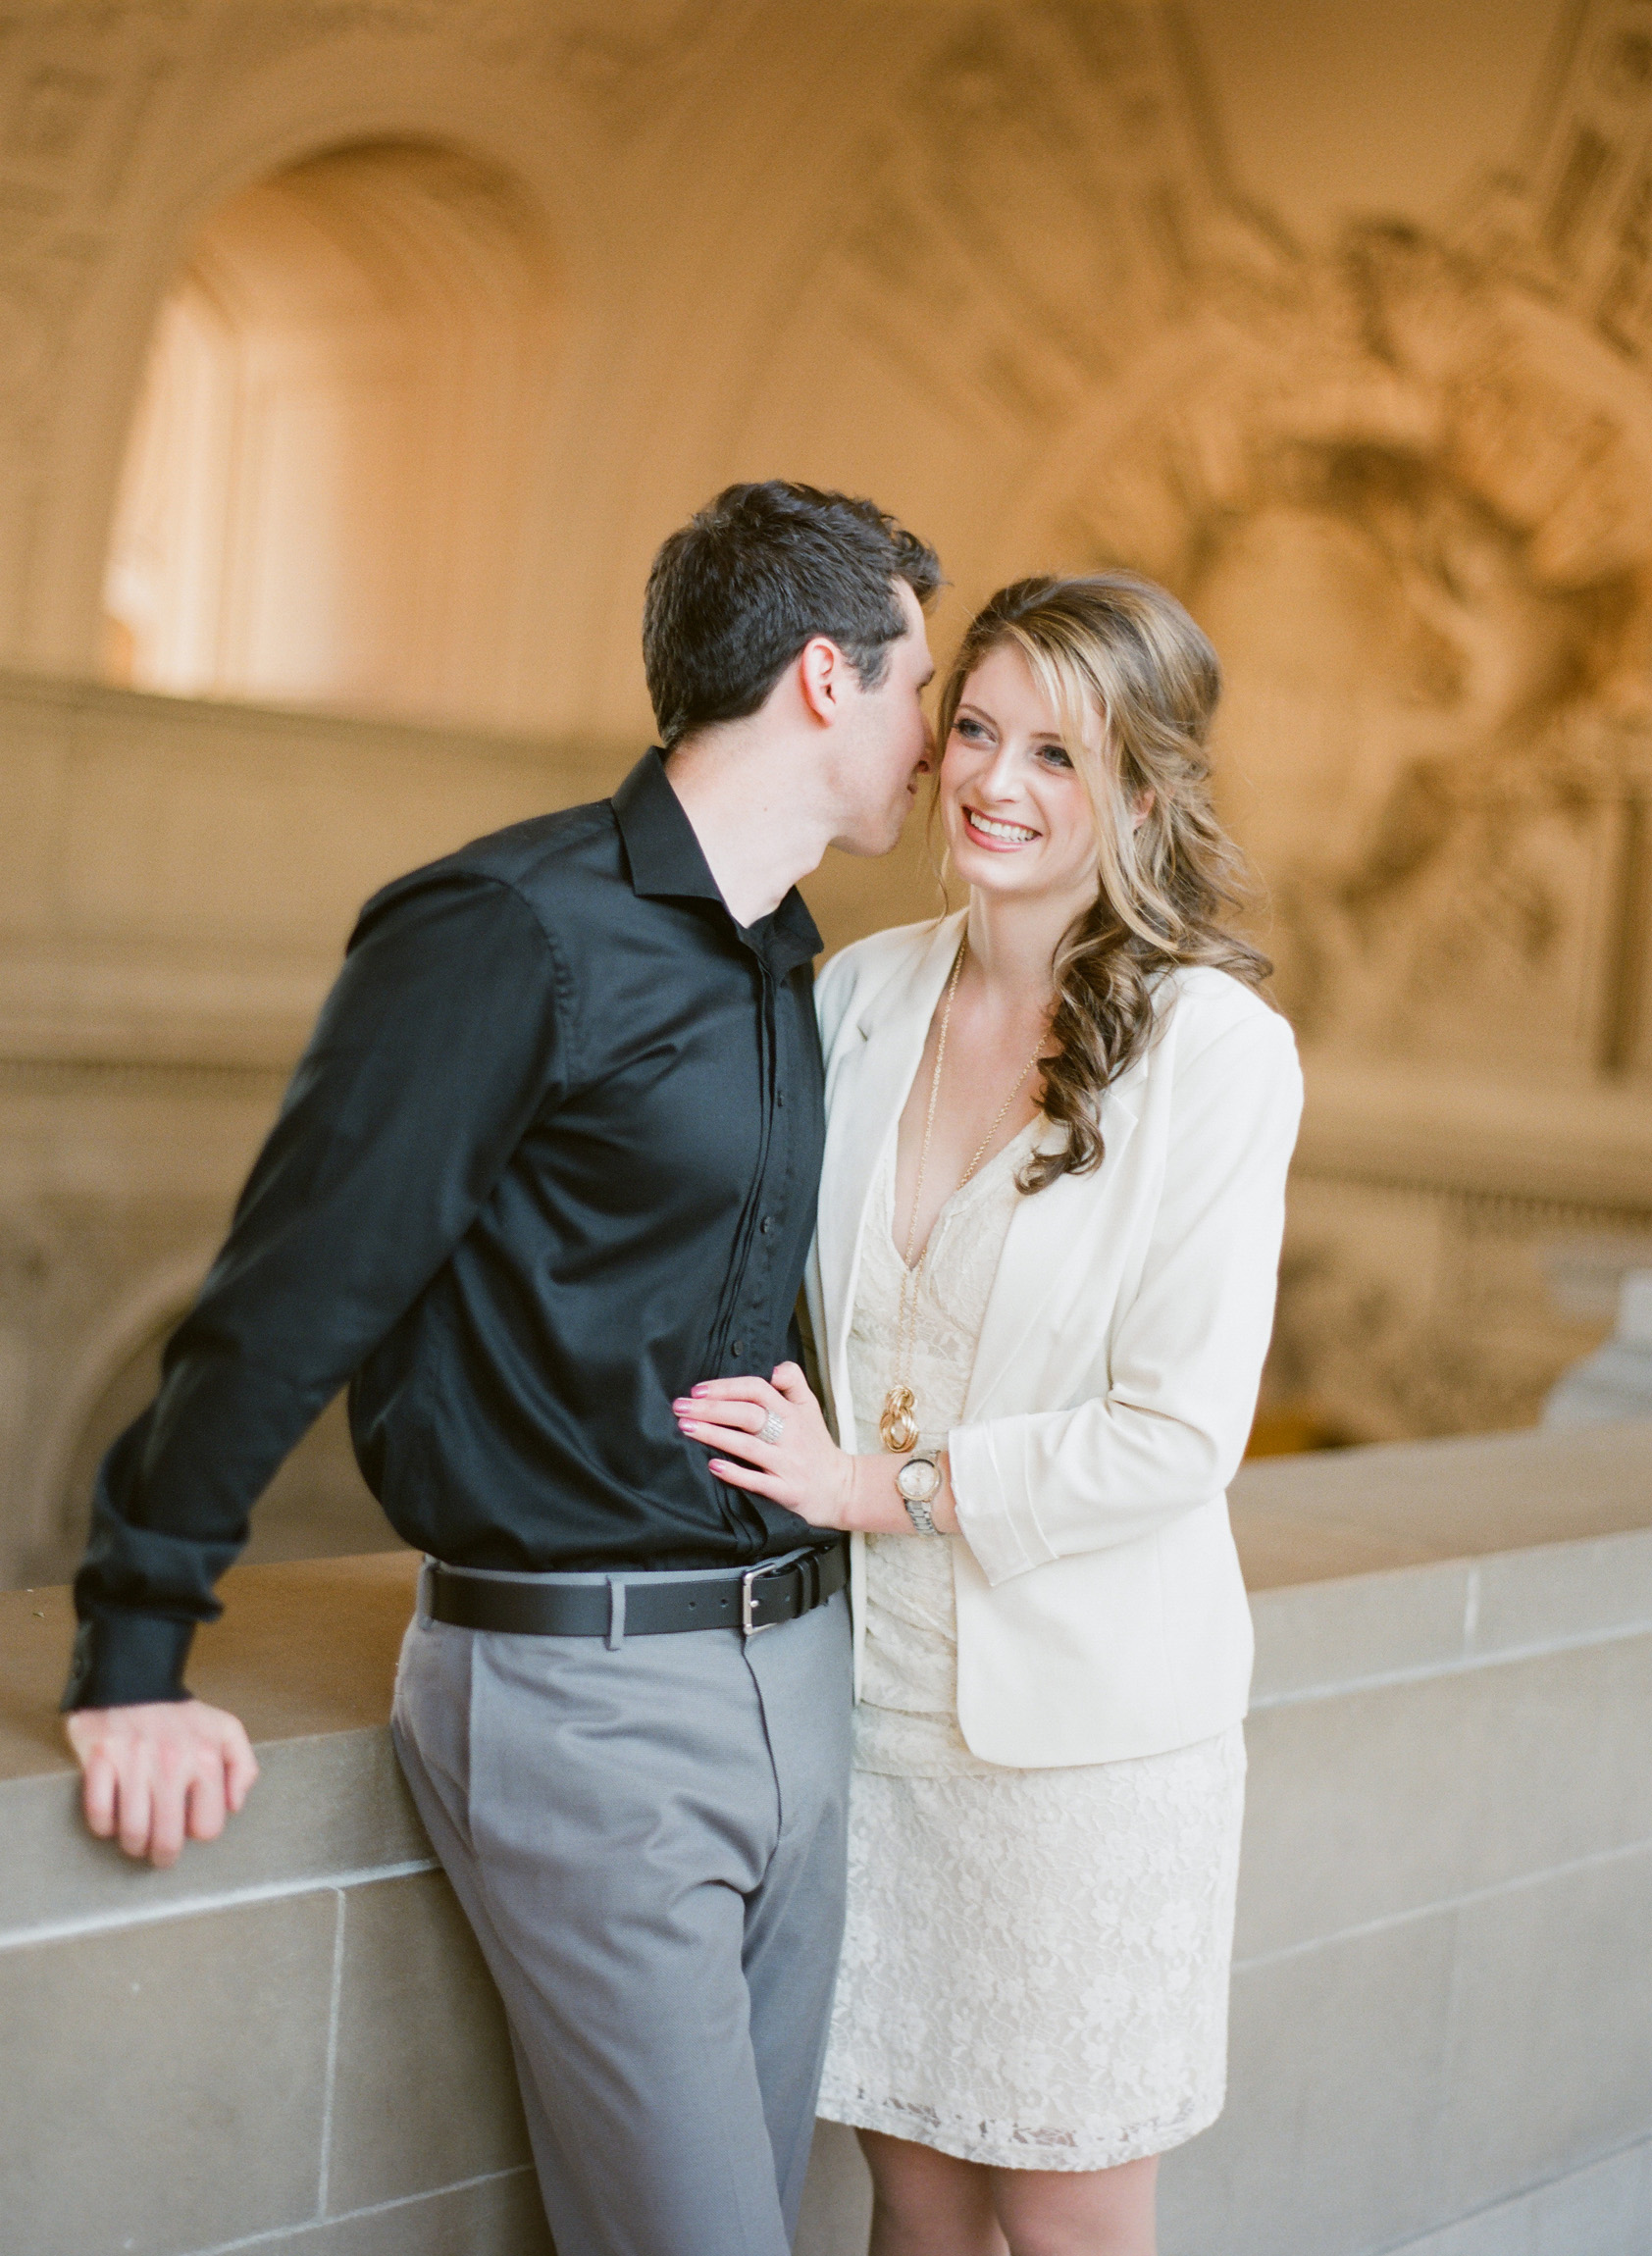 046_janaeshieldsphotography_sanfrancisco_cityhall_weddings.jpg